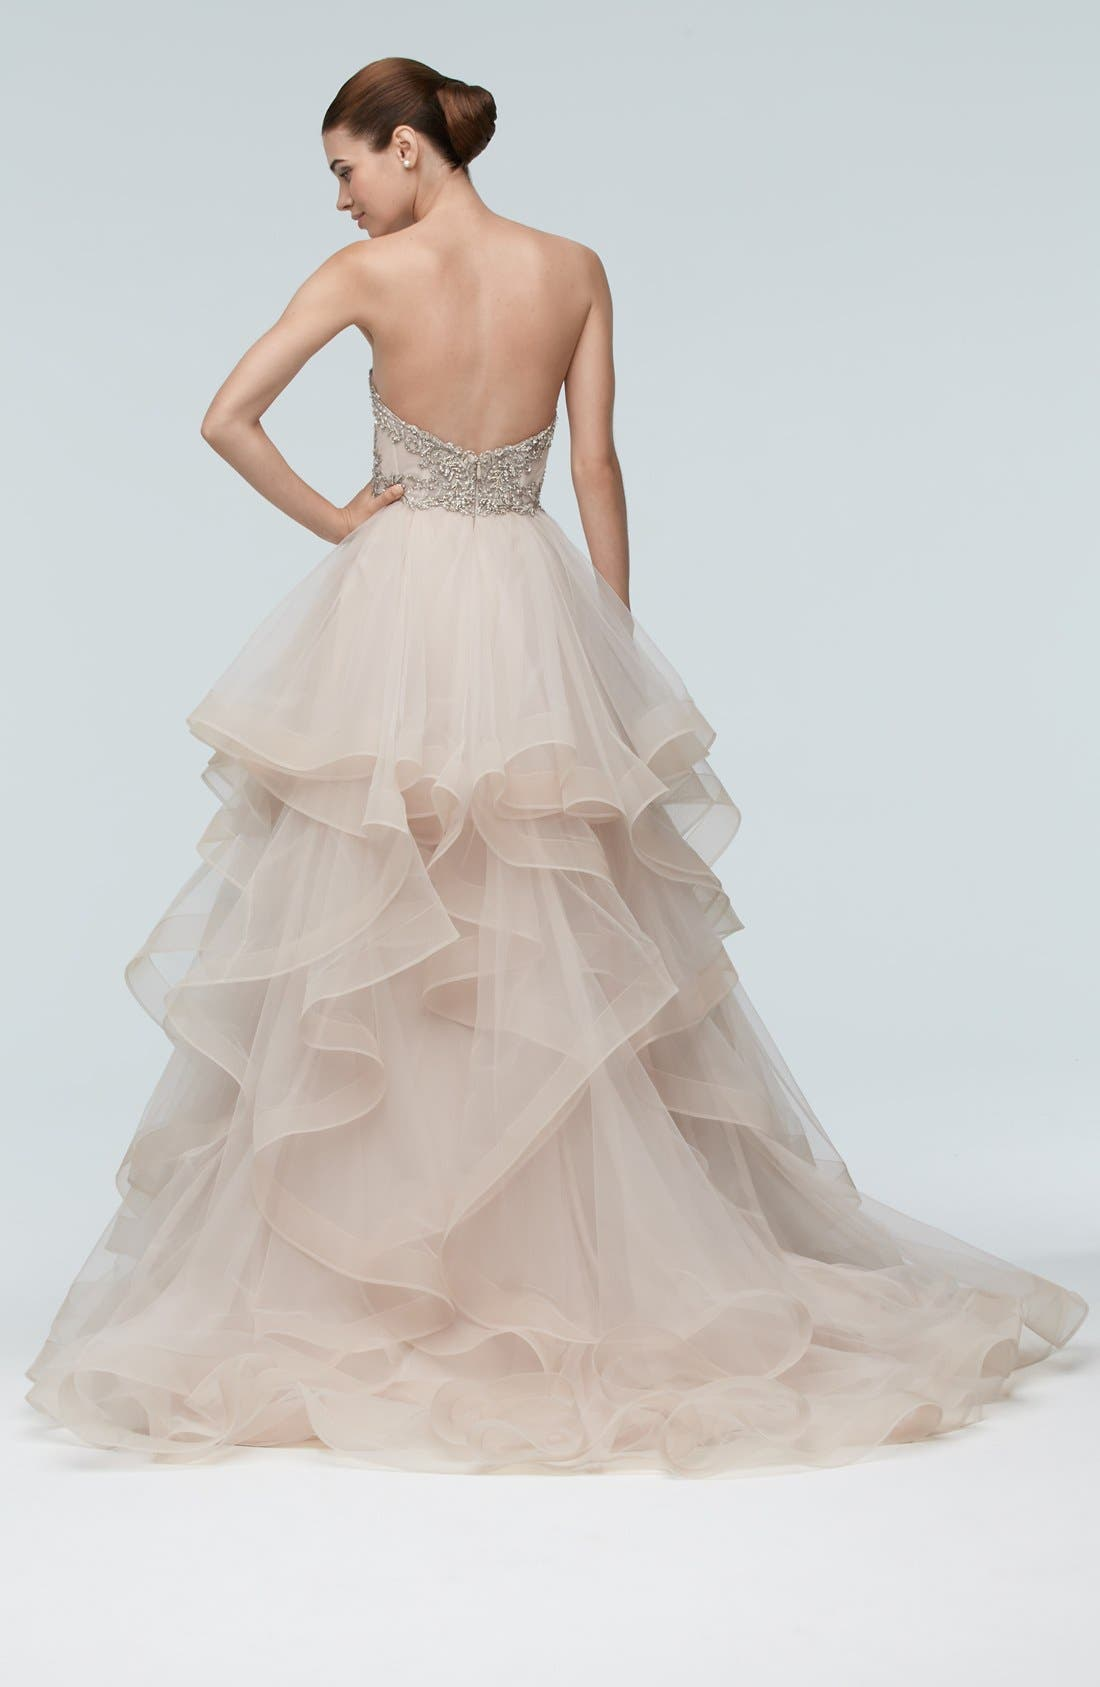 Meri Embellished Strapless Layered Tulle Gown,                             Alternate thumbnail 2, color,                             OATMEAL/METALLIC